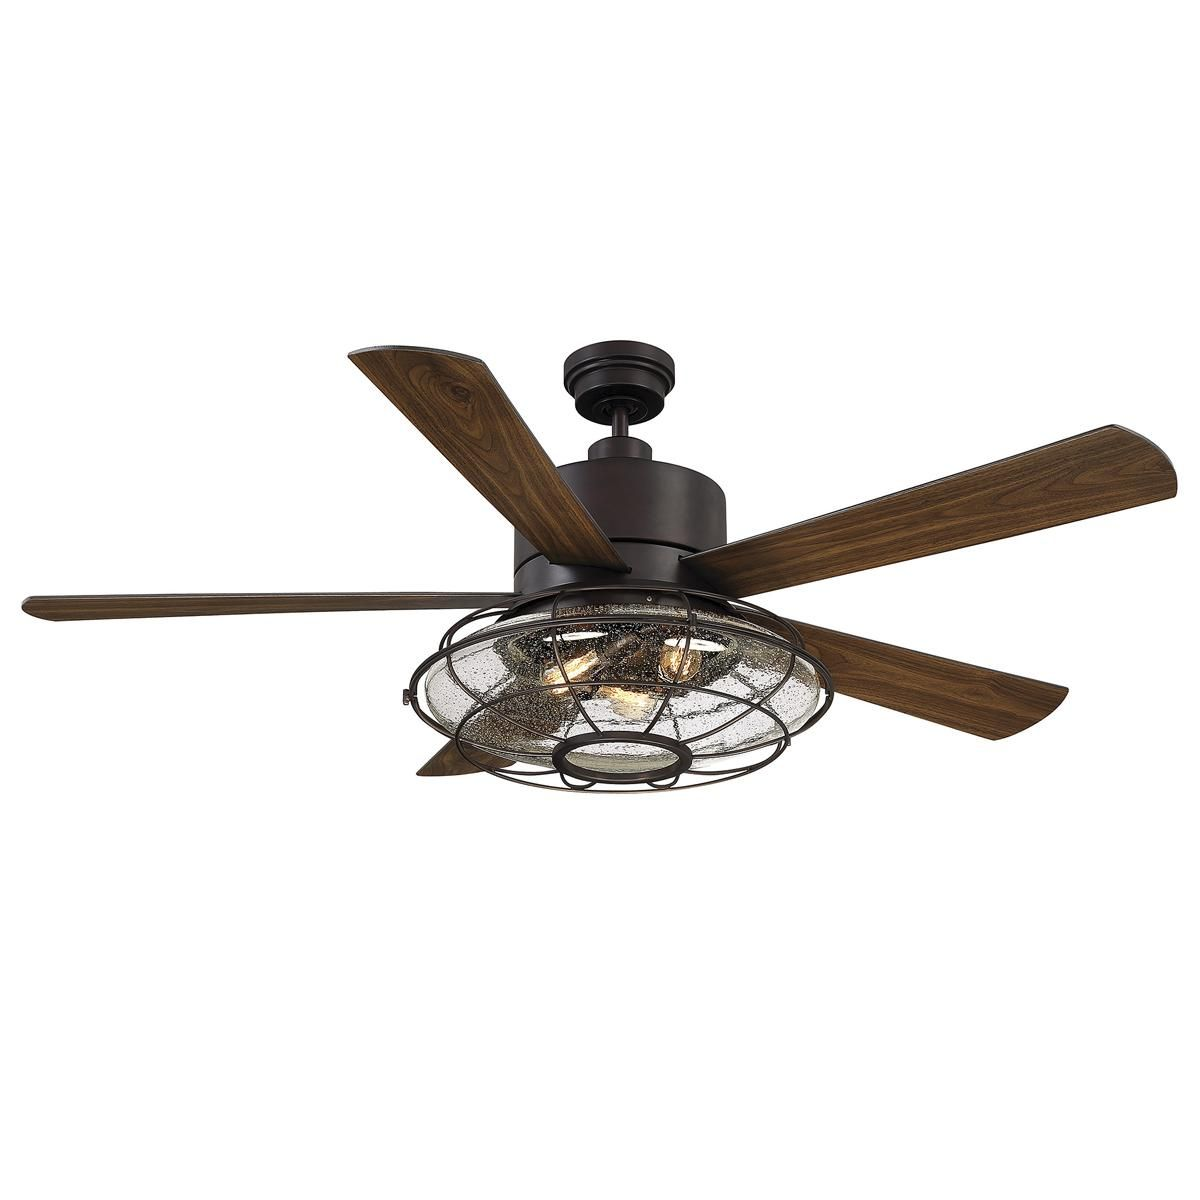 56 West Loop Caged Ceiling Fan With Images Ceiling Fan With